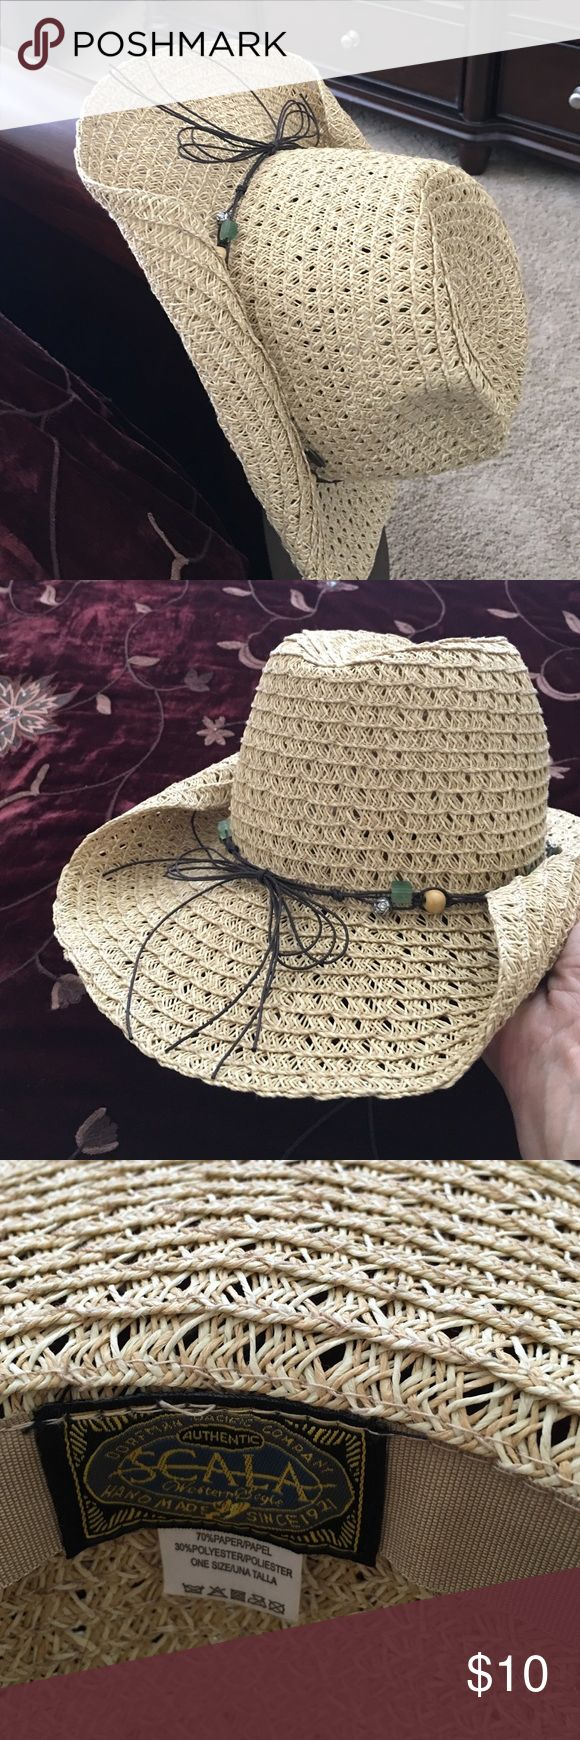 Scalia Women's Crocheted Raffia Rancher Hat One size, worn once Scala Other